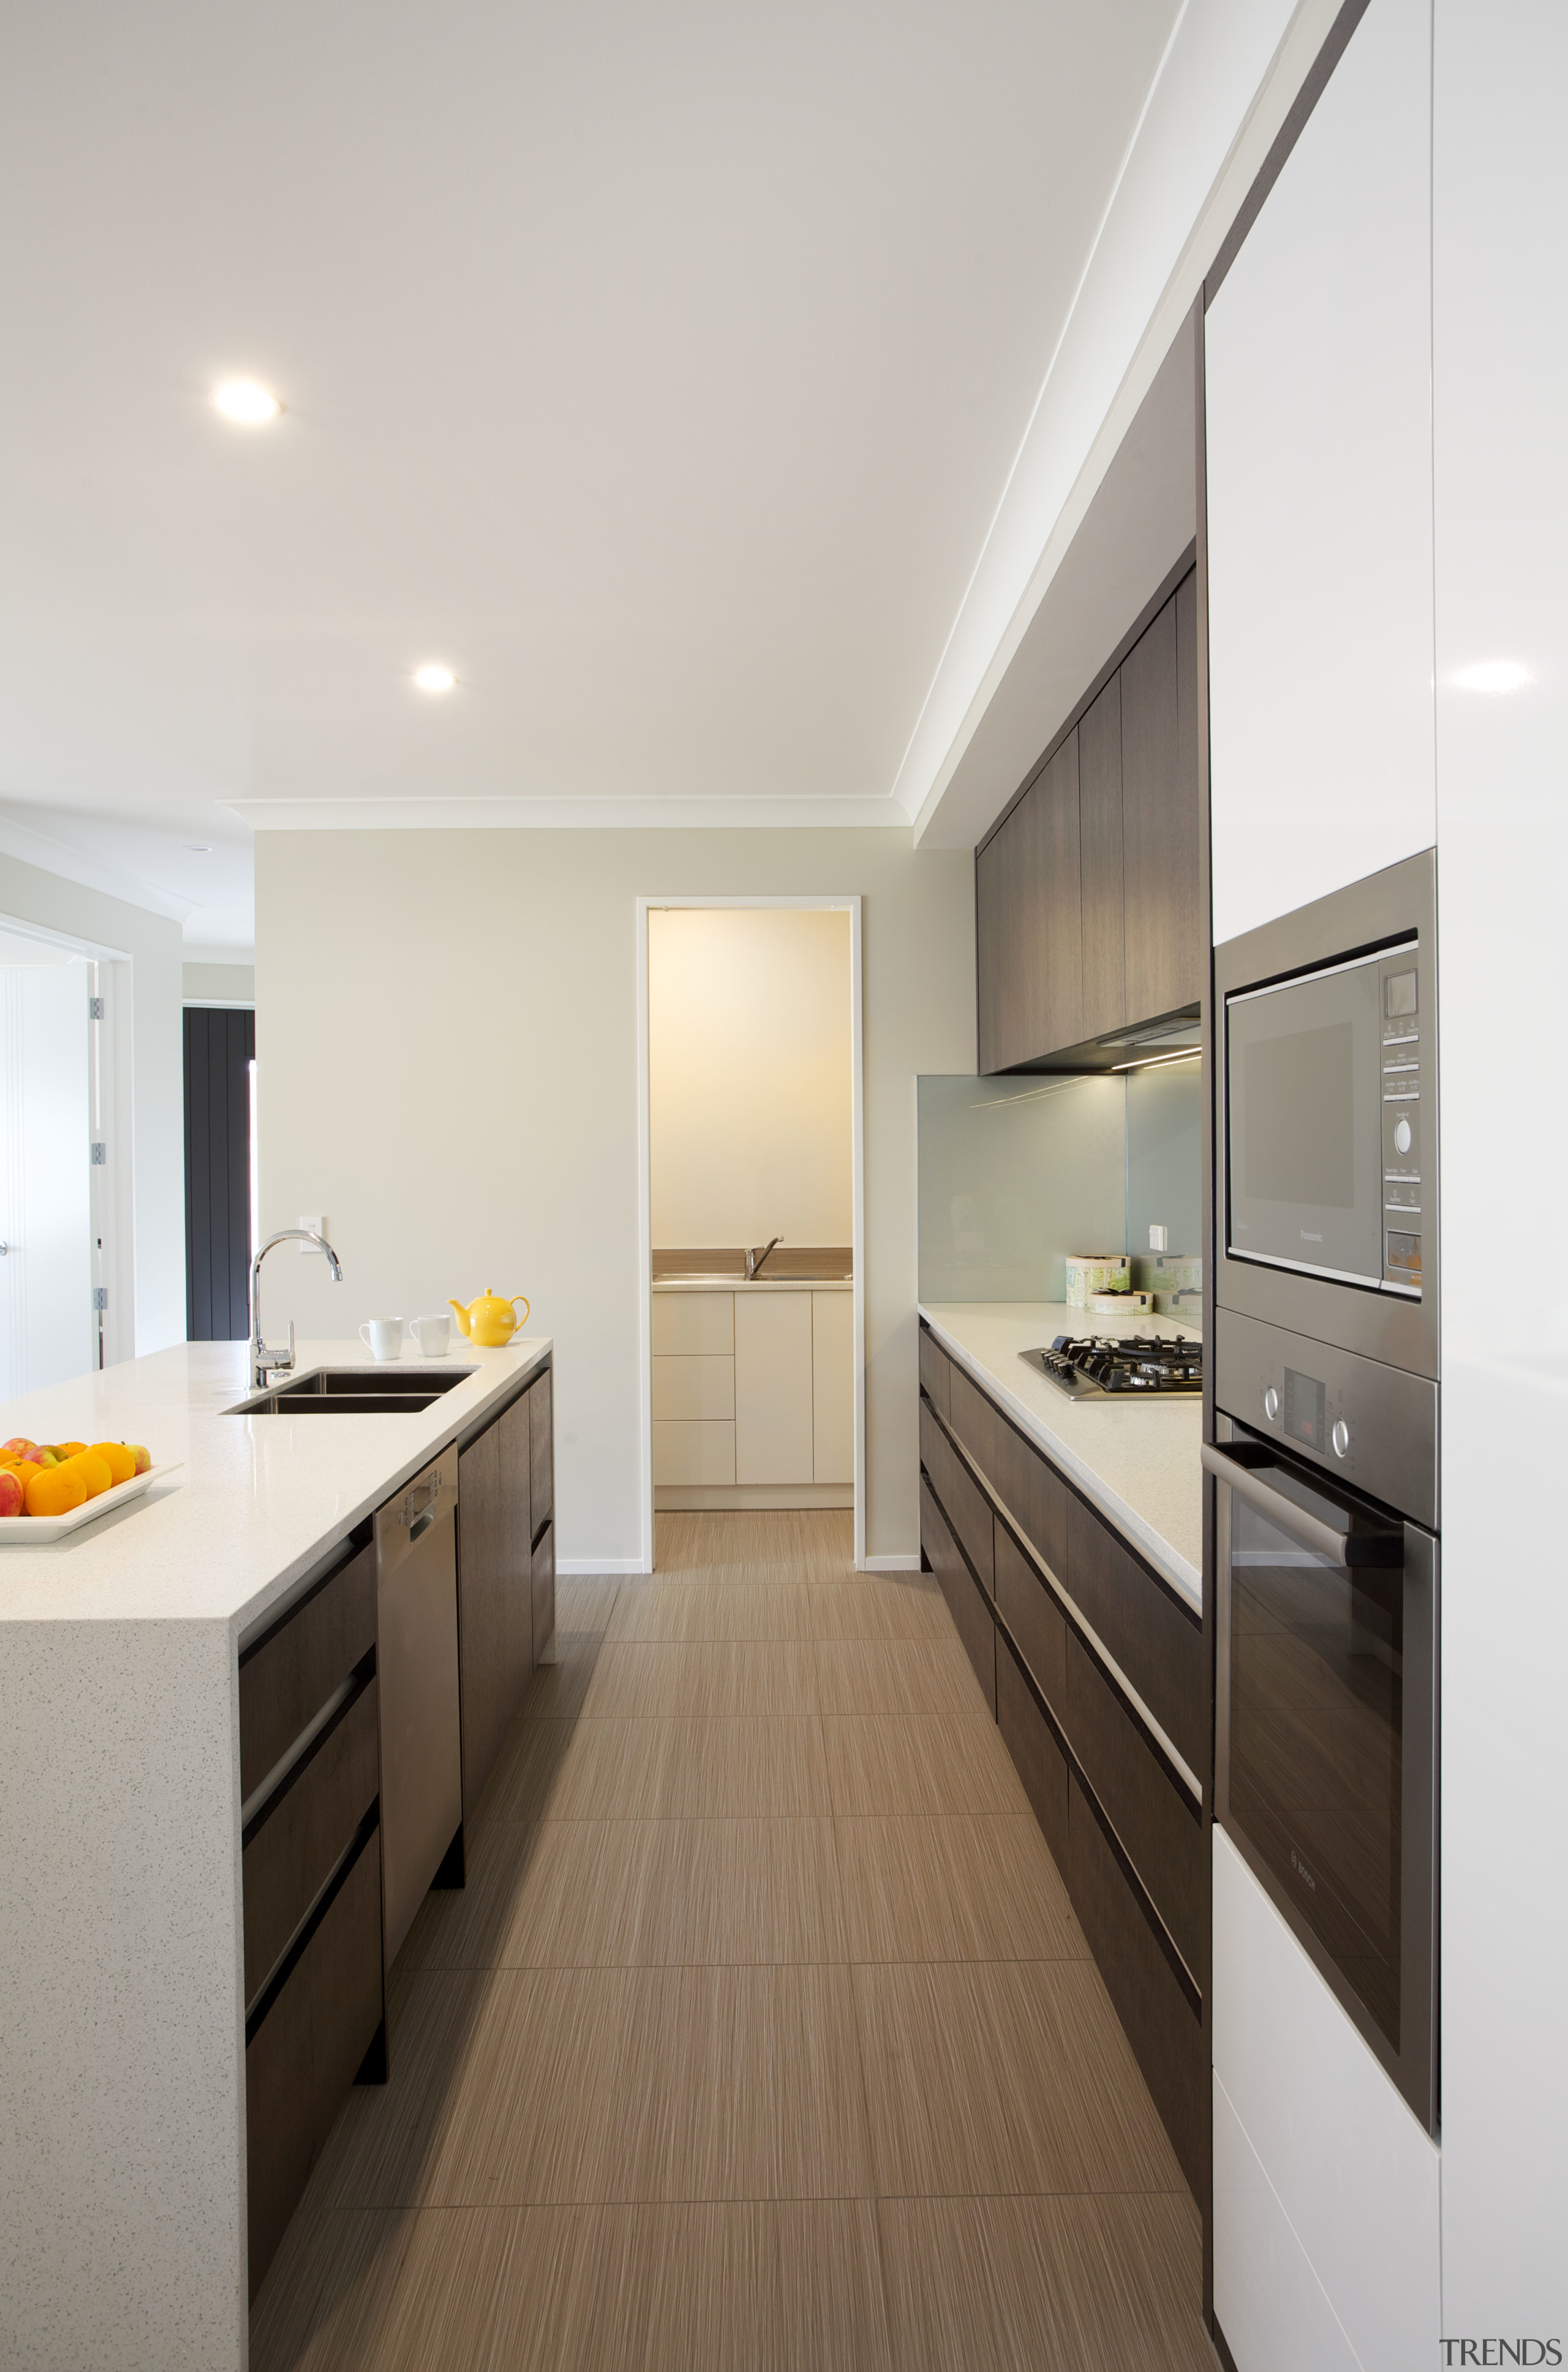 At one end of this kitchen, a scullery cabinetry, countertop, floor, interior design, kitchen, real estate, room, white